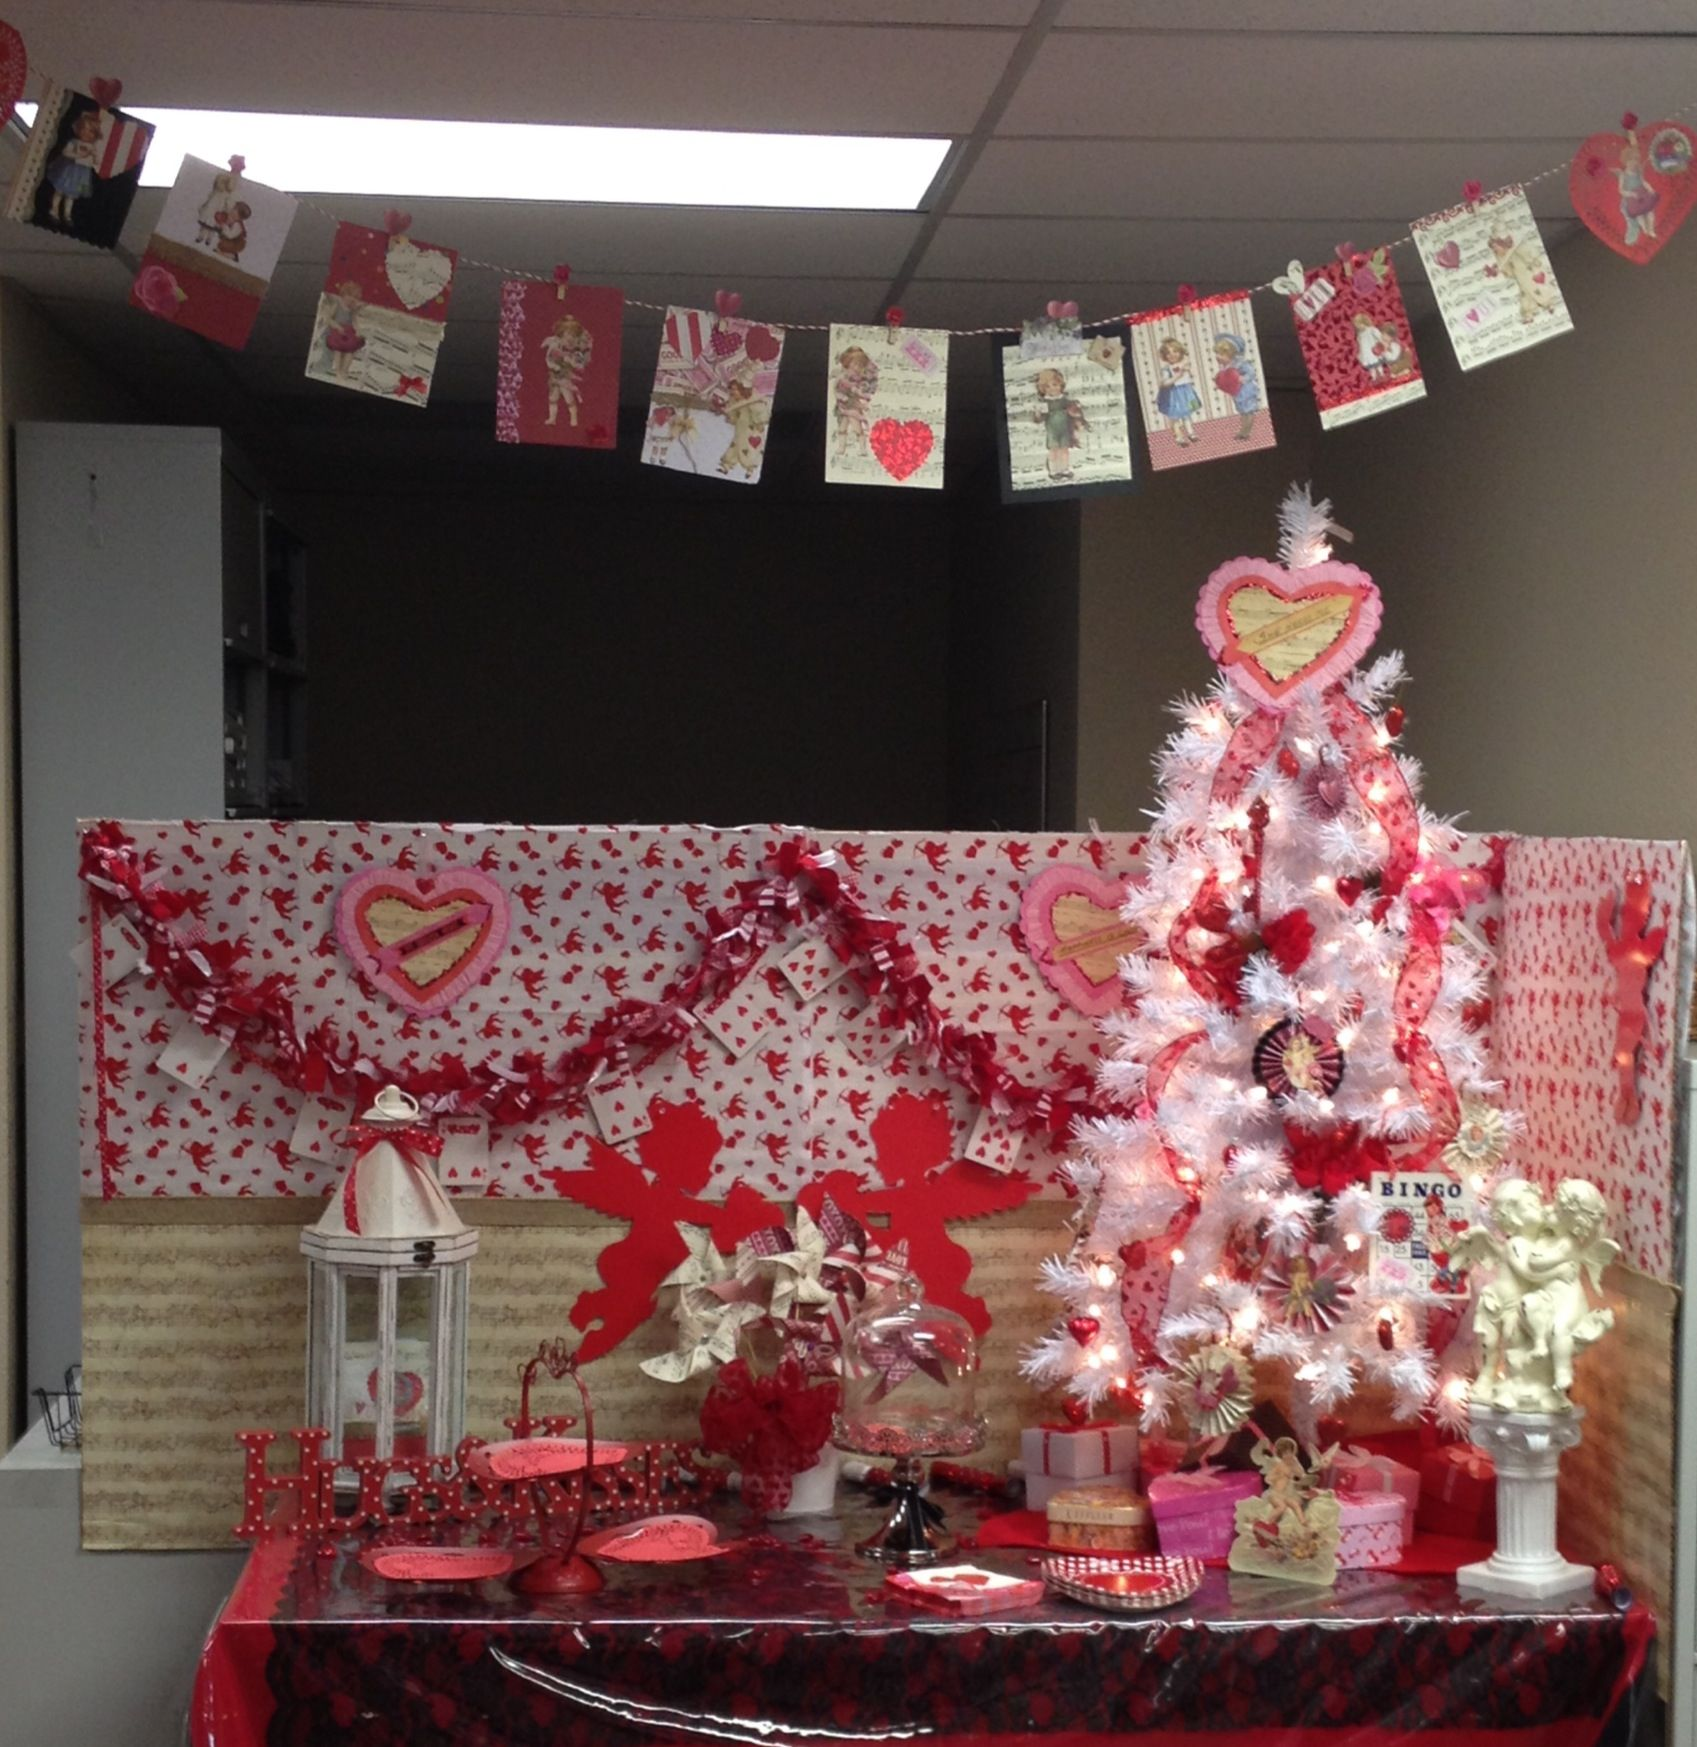 valentines day office ideas. My Office Potluck Decorations. Thank You Pinterest For The Wonderful Ideas. Valentine Valentines Day Ideas P